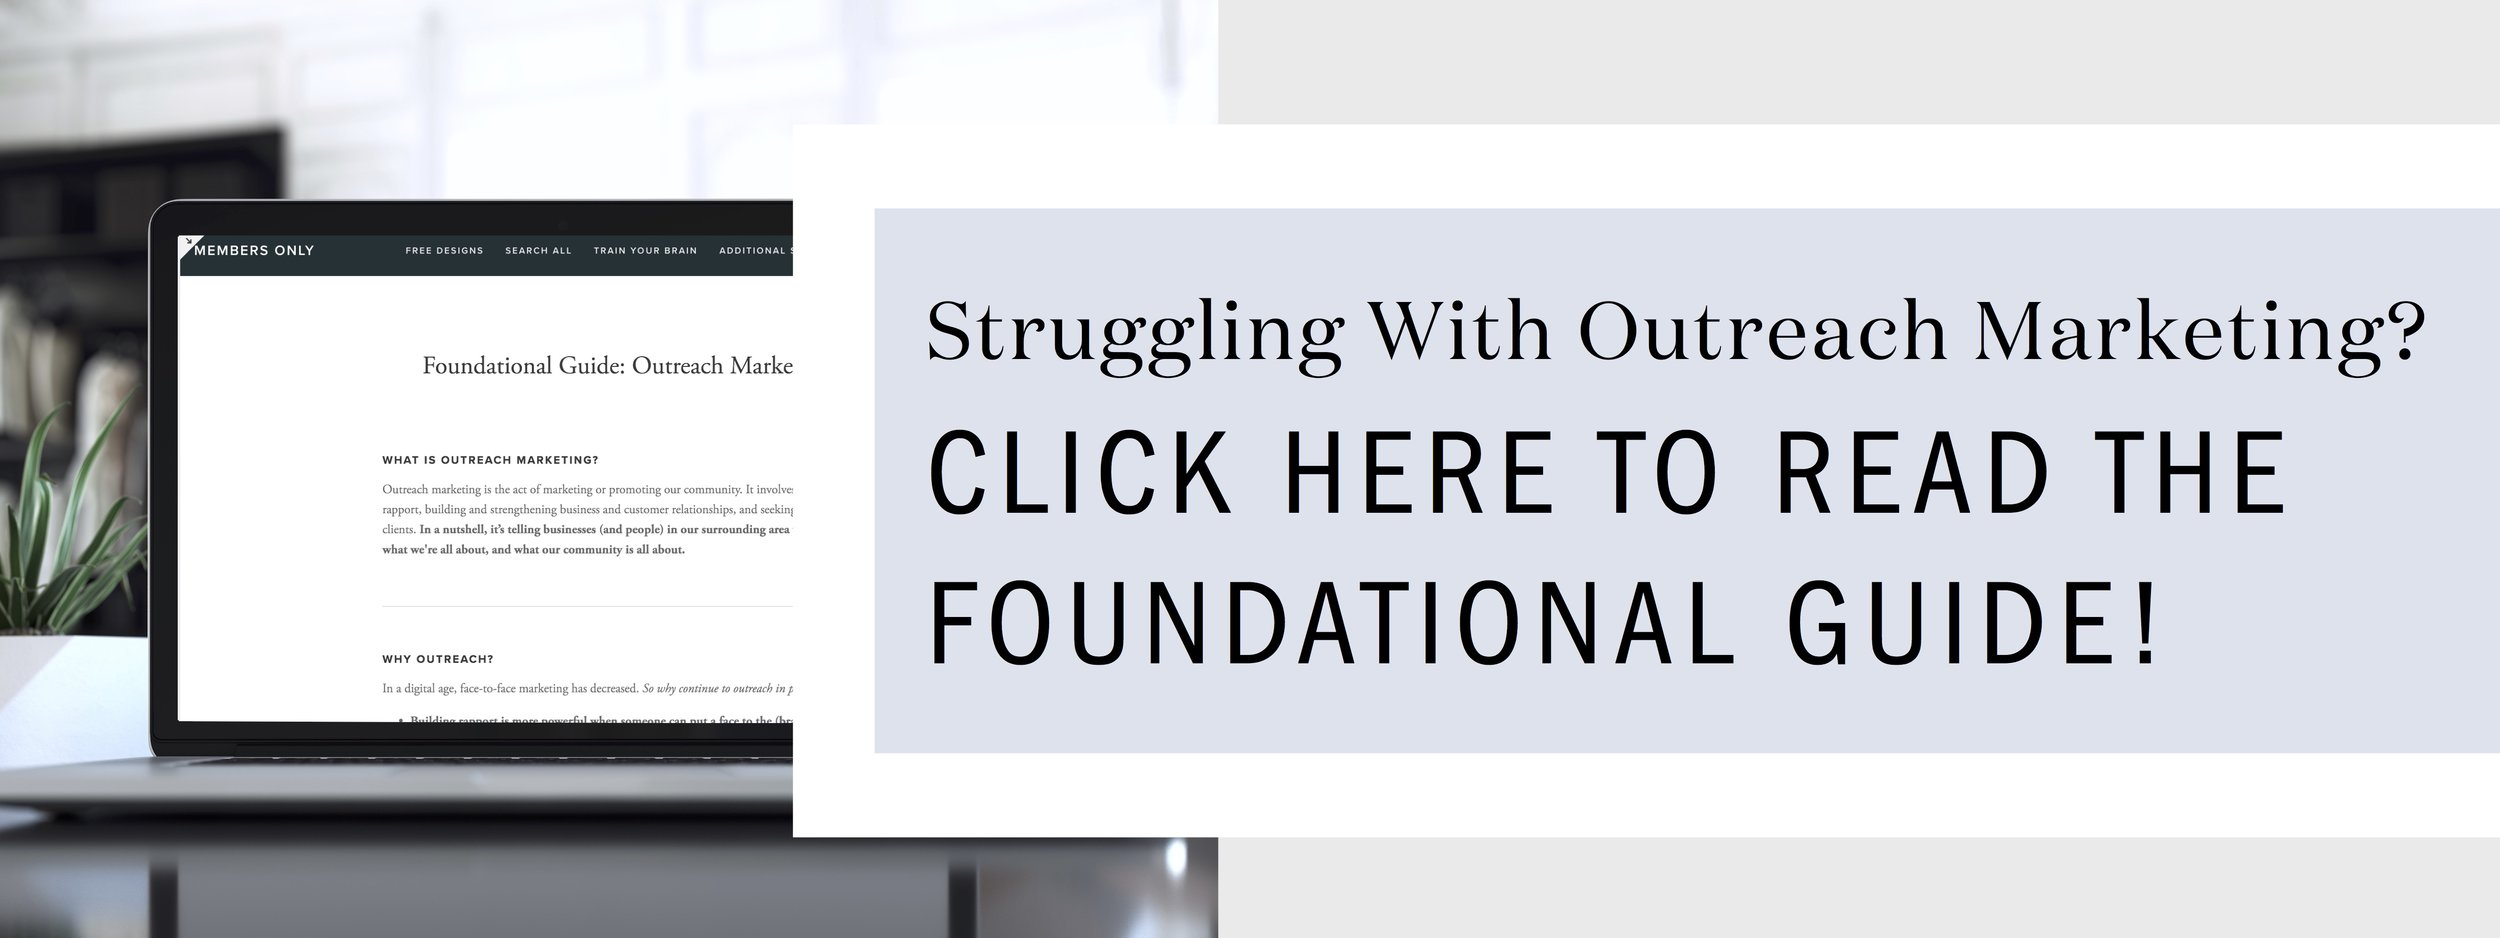 Outreach Foundational Guide Banners.jpg